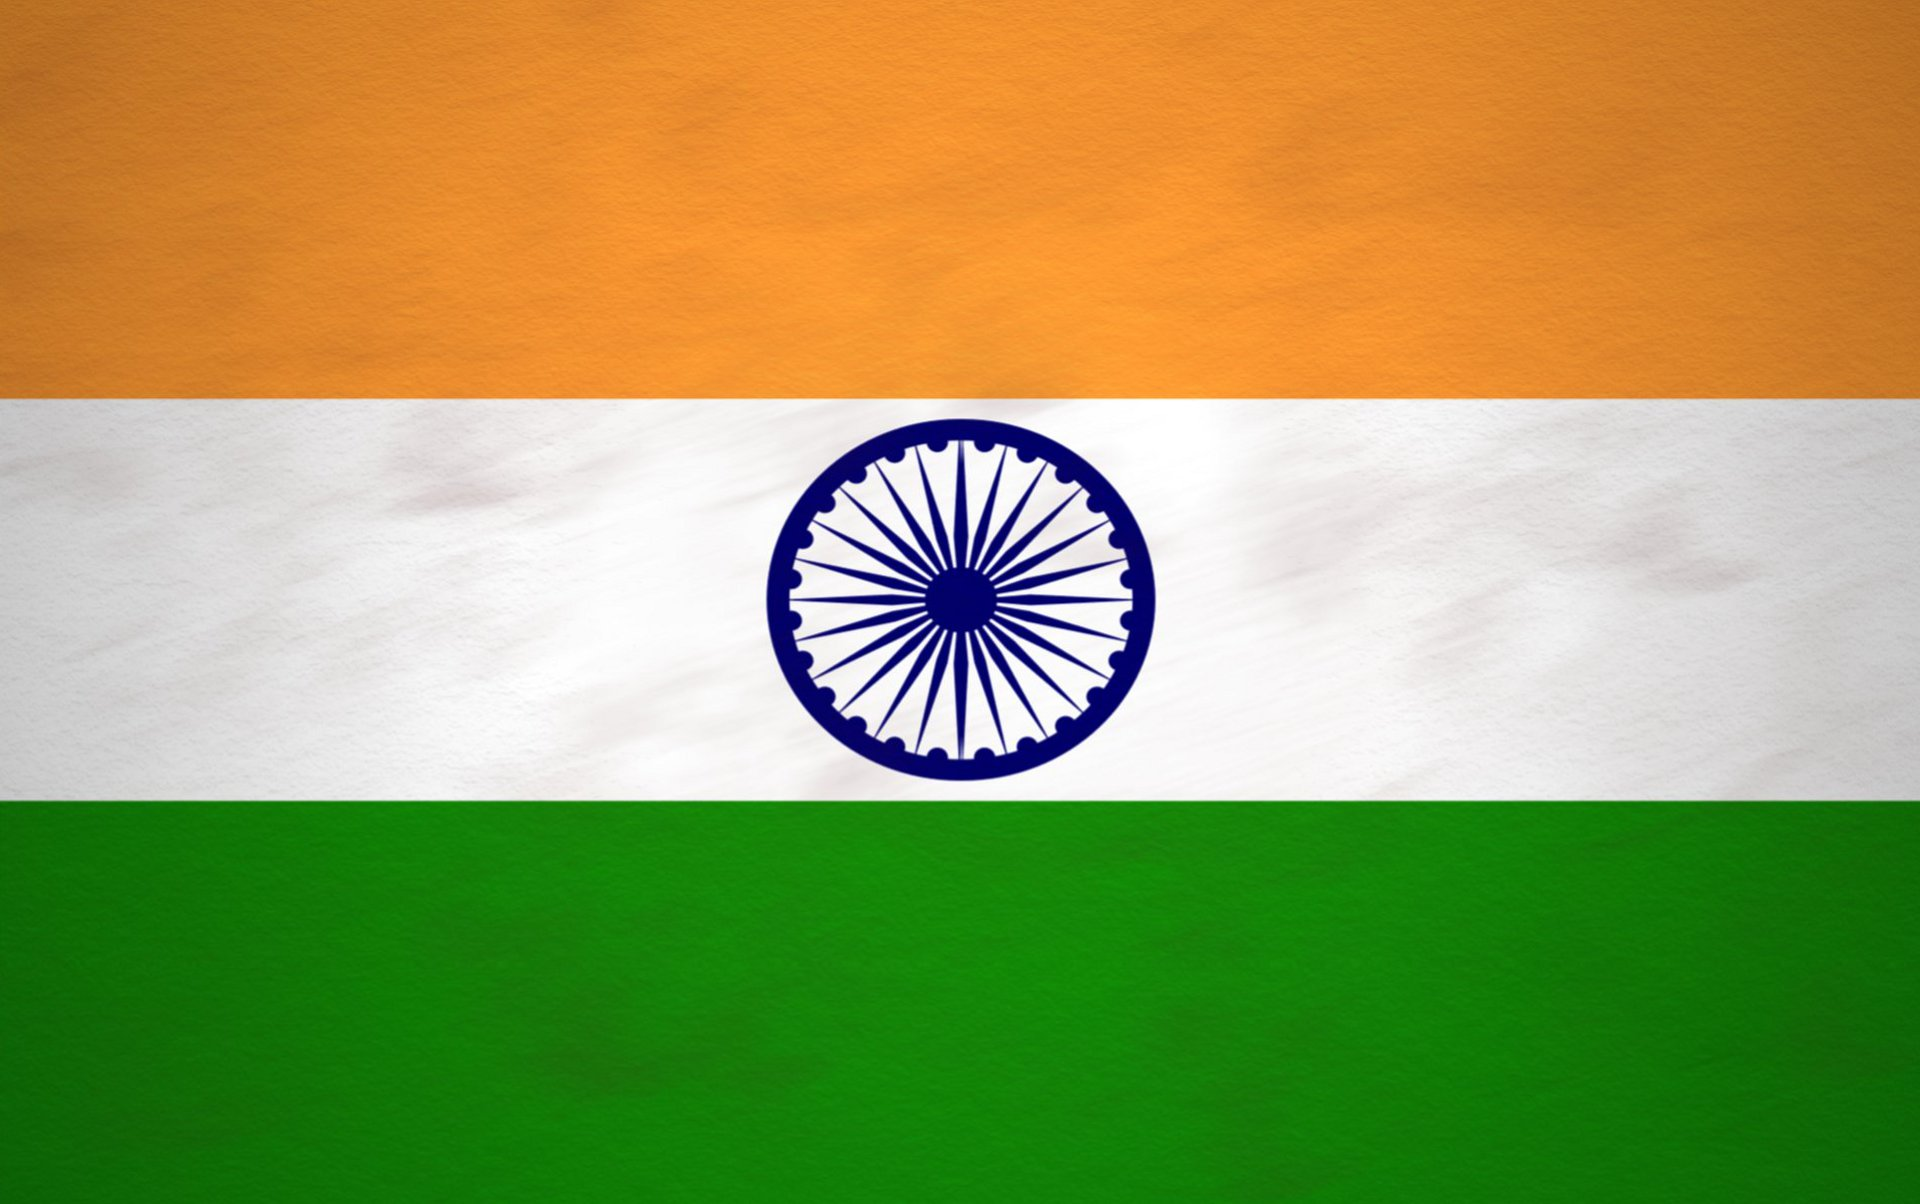 Indian Flag: Indian Flag Wallpapers & HD Images 2018 [Free Download]